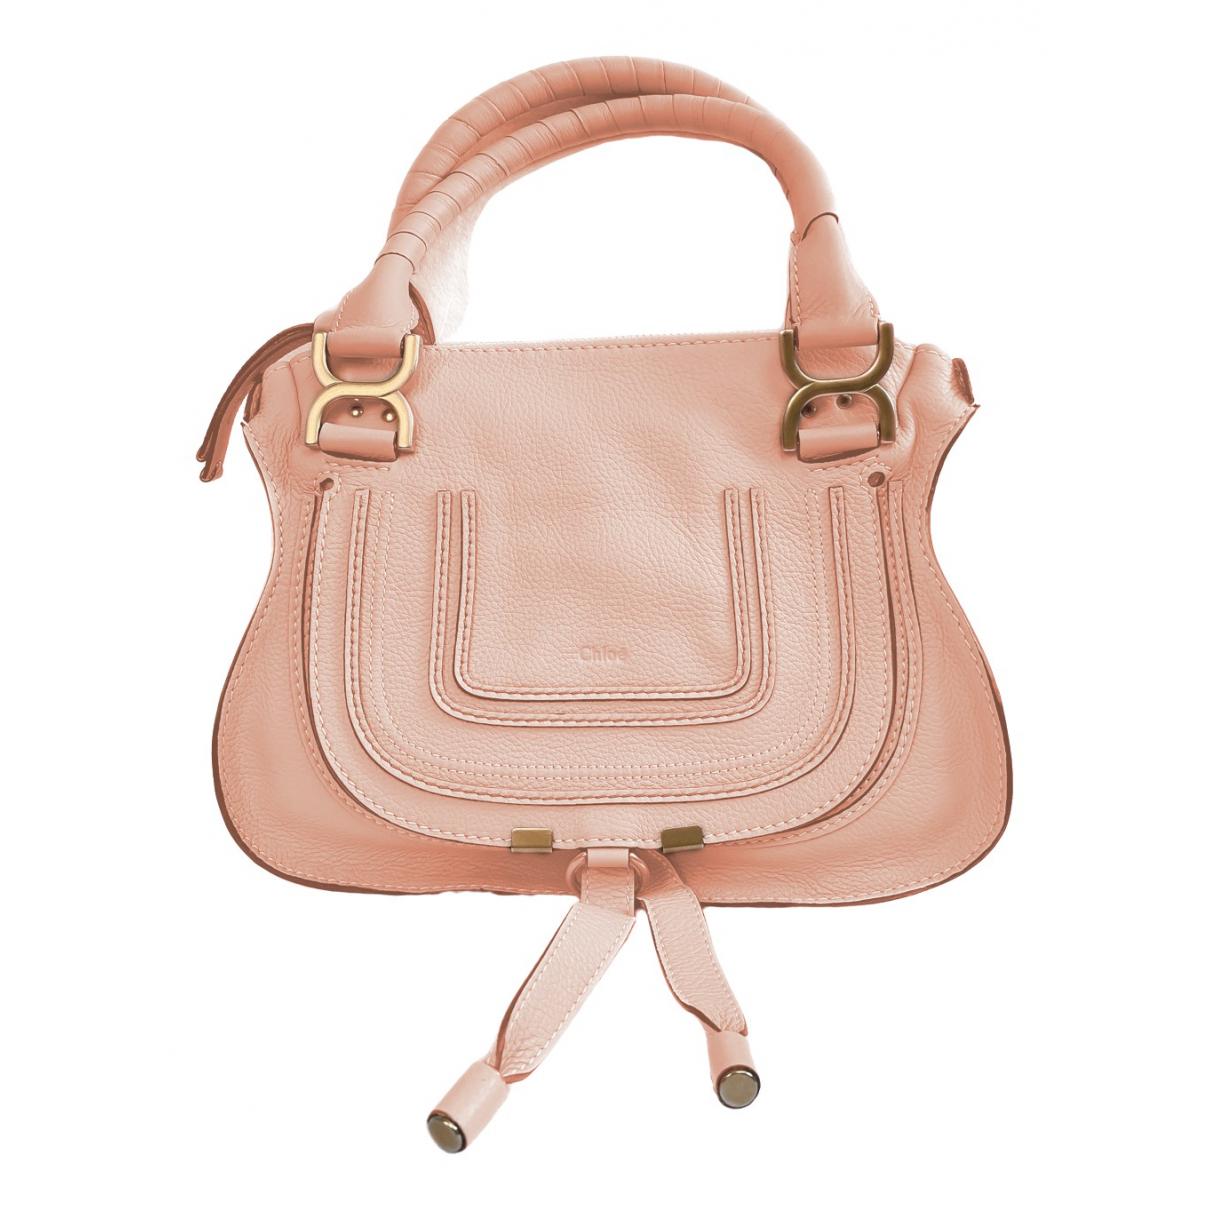 Chloé Marcie Pink Leather handbag for Women \N